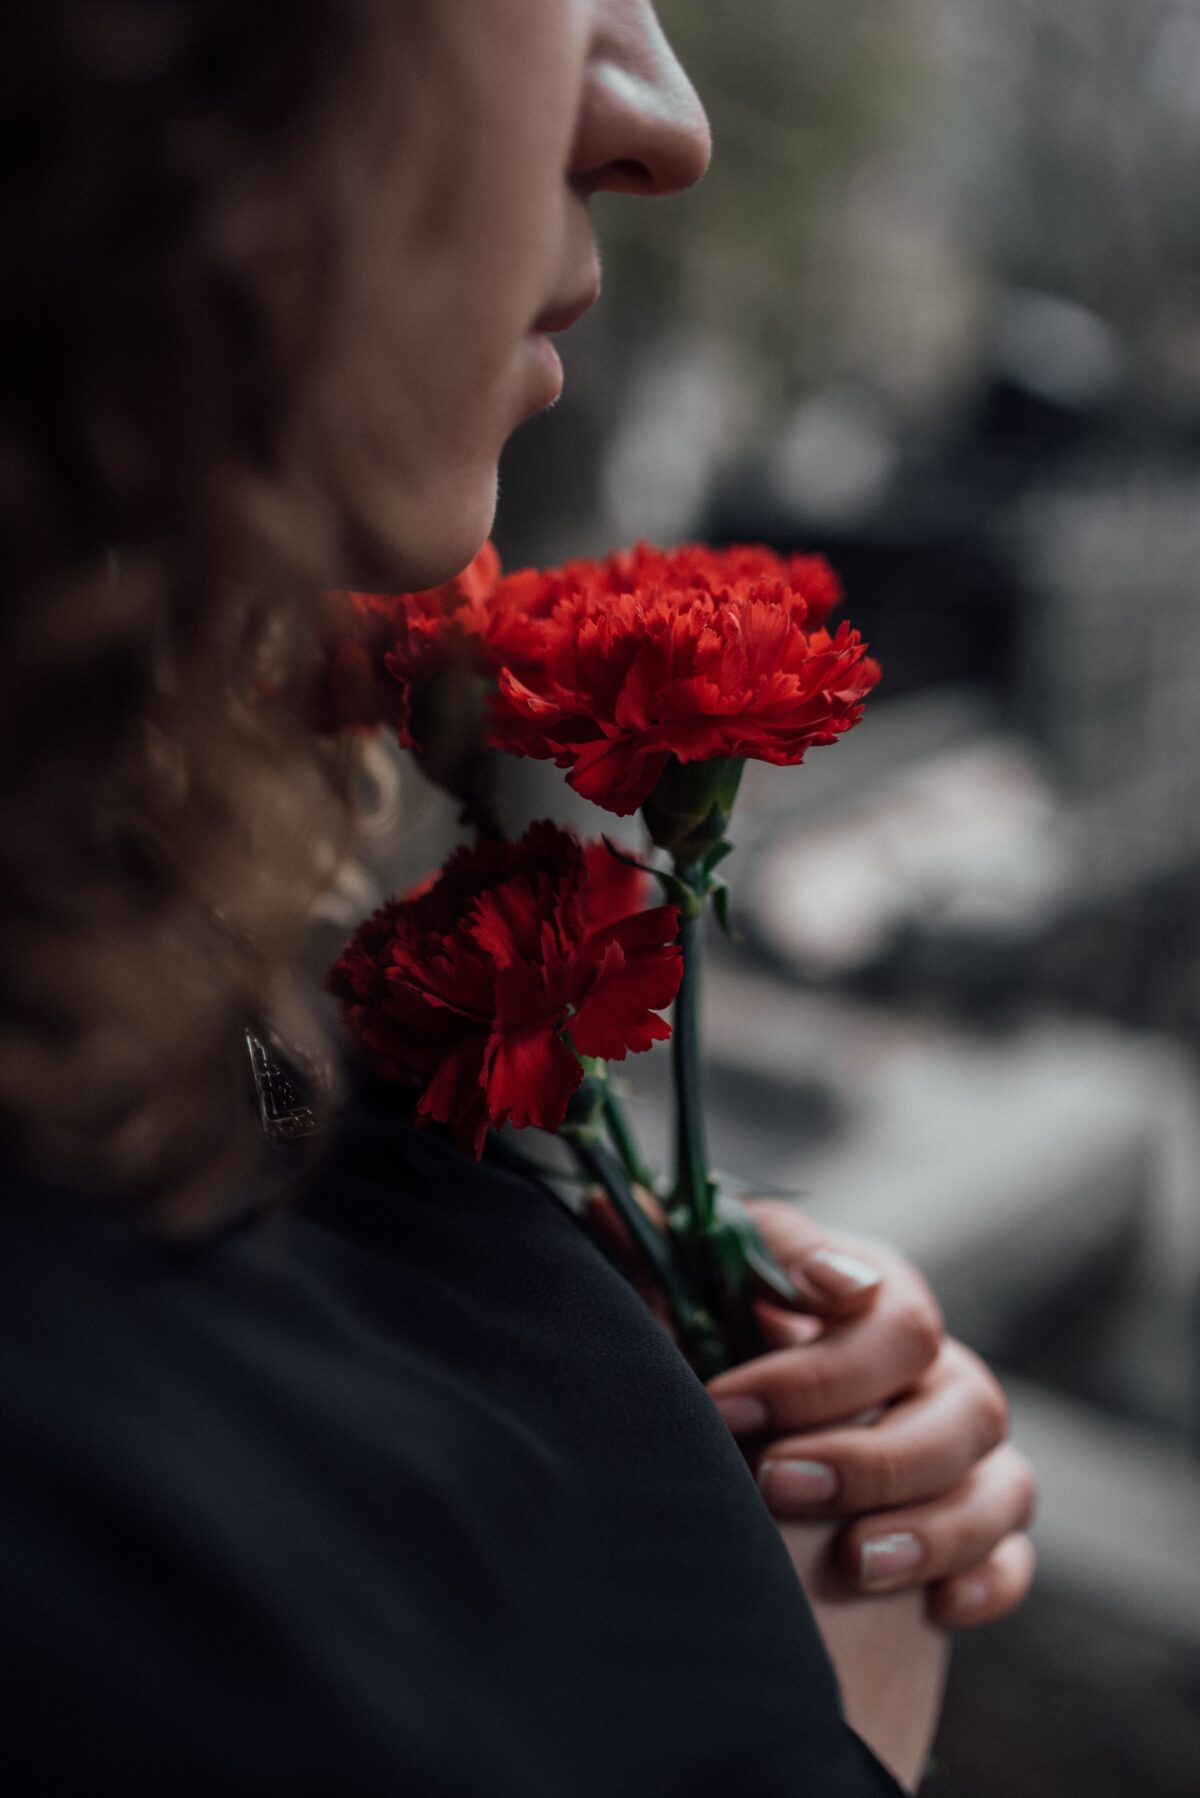 mourning the loss of a loved one